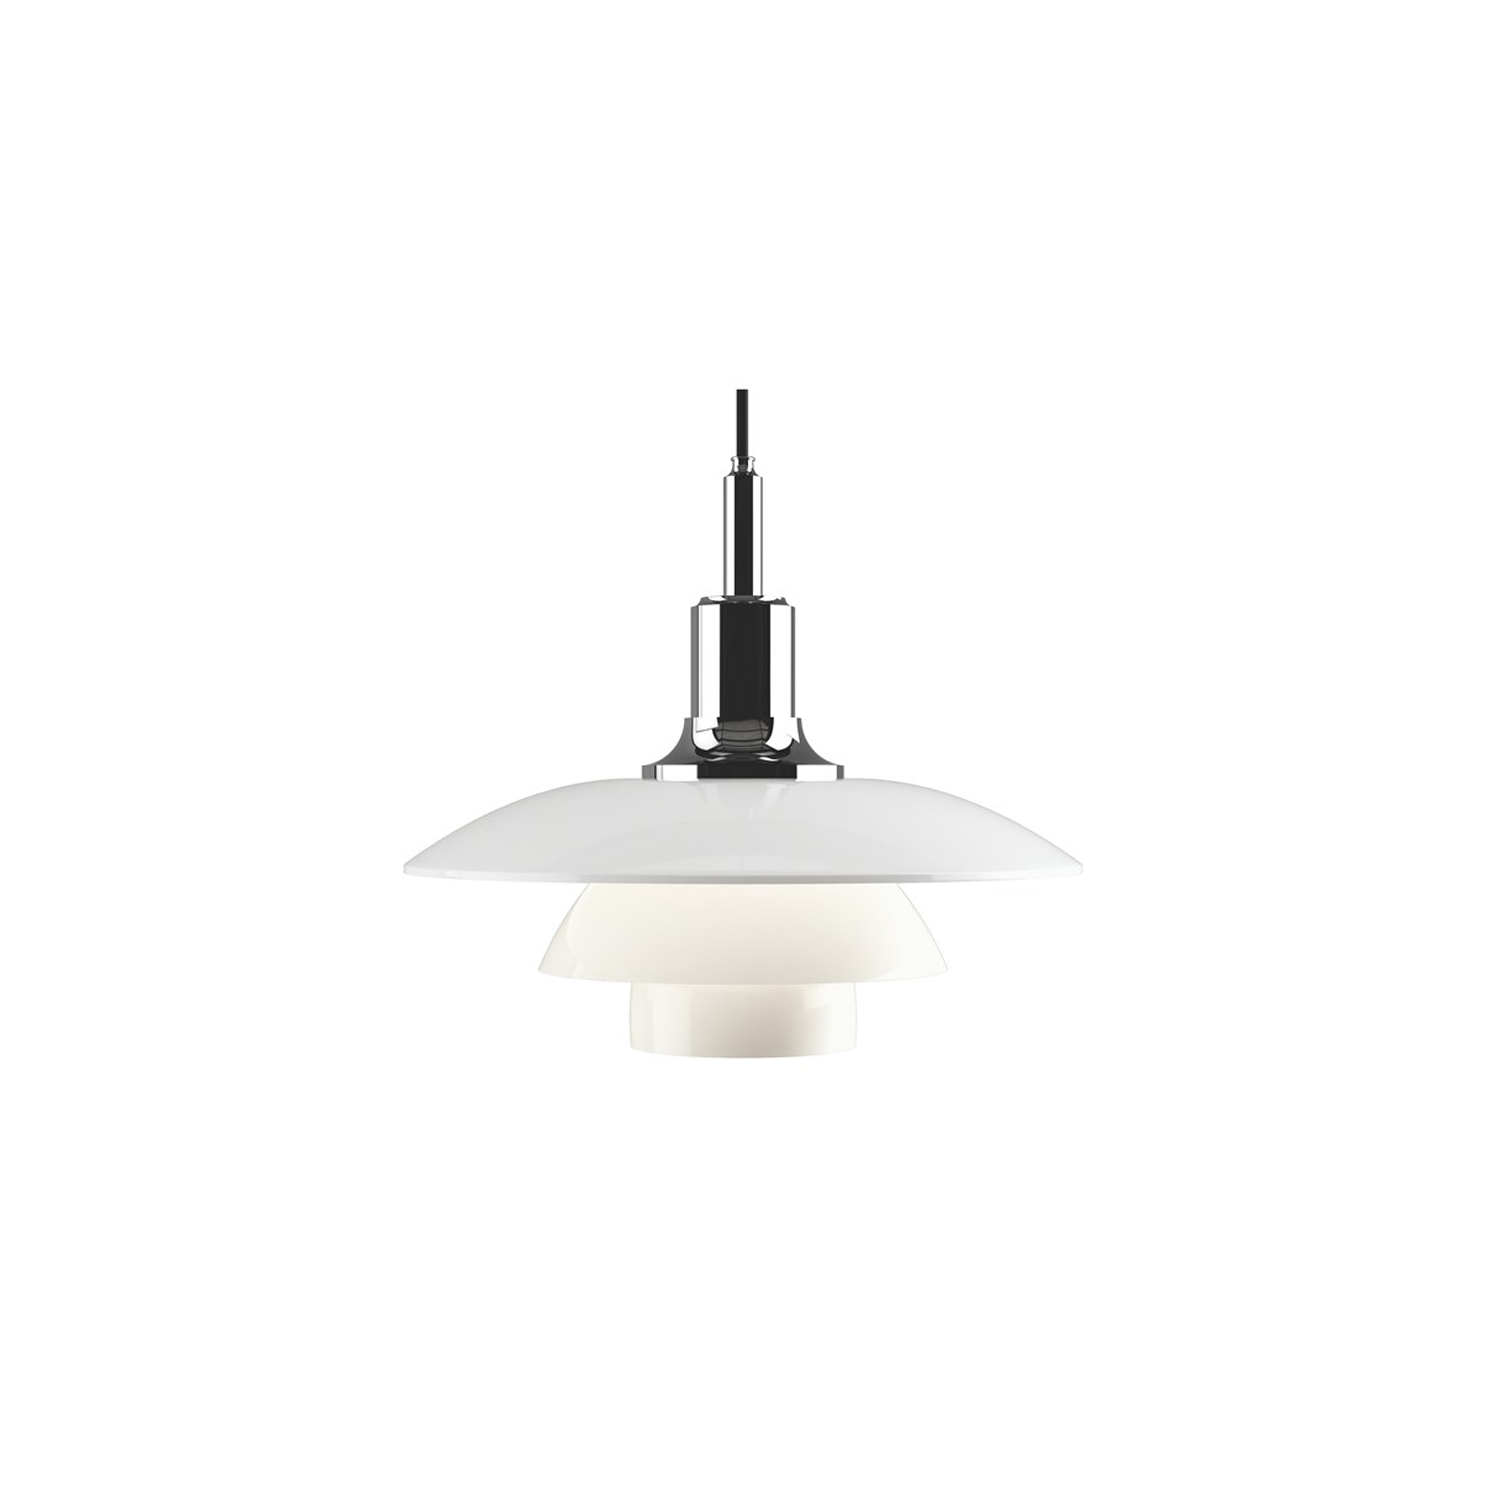 PH 3½-3 Glass Pendant light - The fixture is designed based on the principle of a reflective three-shade system, which directs the majority of the light downwards. The shades are made of mouth-blown opal three-layer glass, which is glossy on top and sandblasted matt on the underside, giving a soft and uniform light distribution. | Matter of Stuff